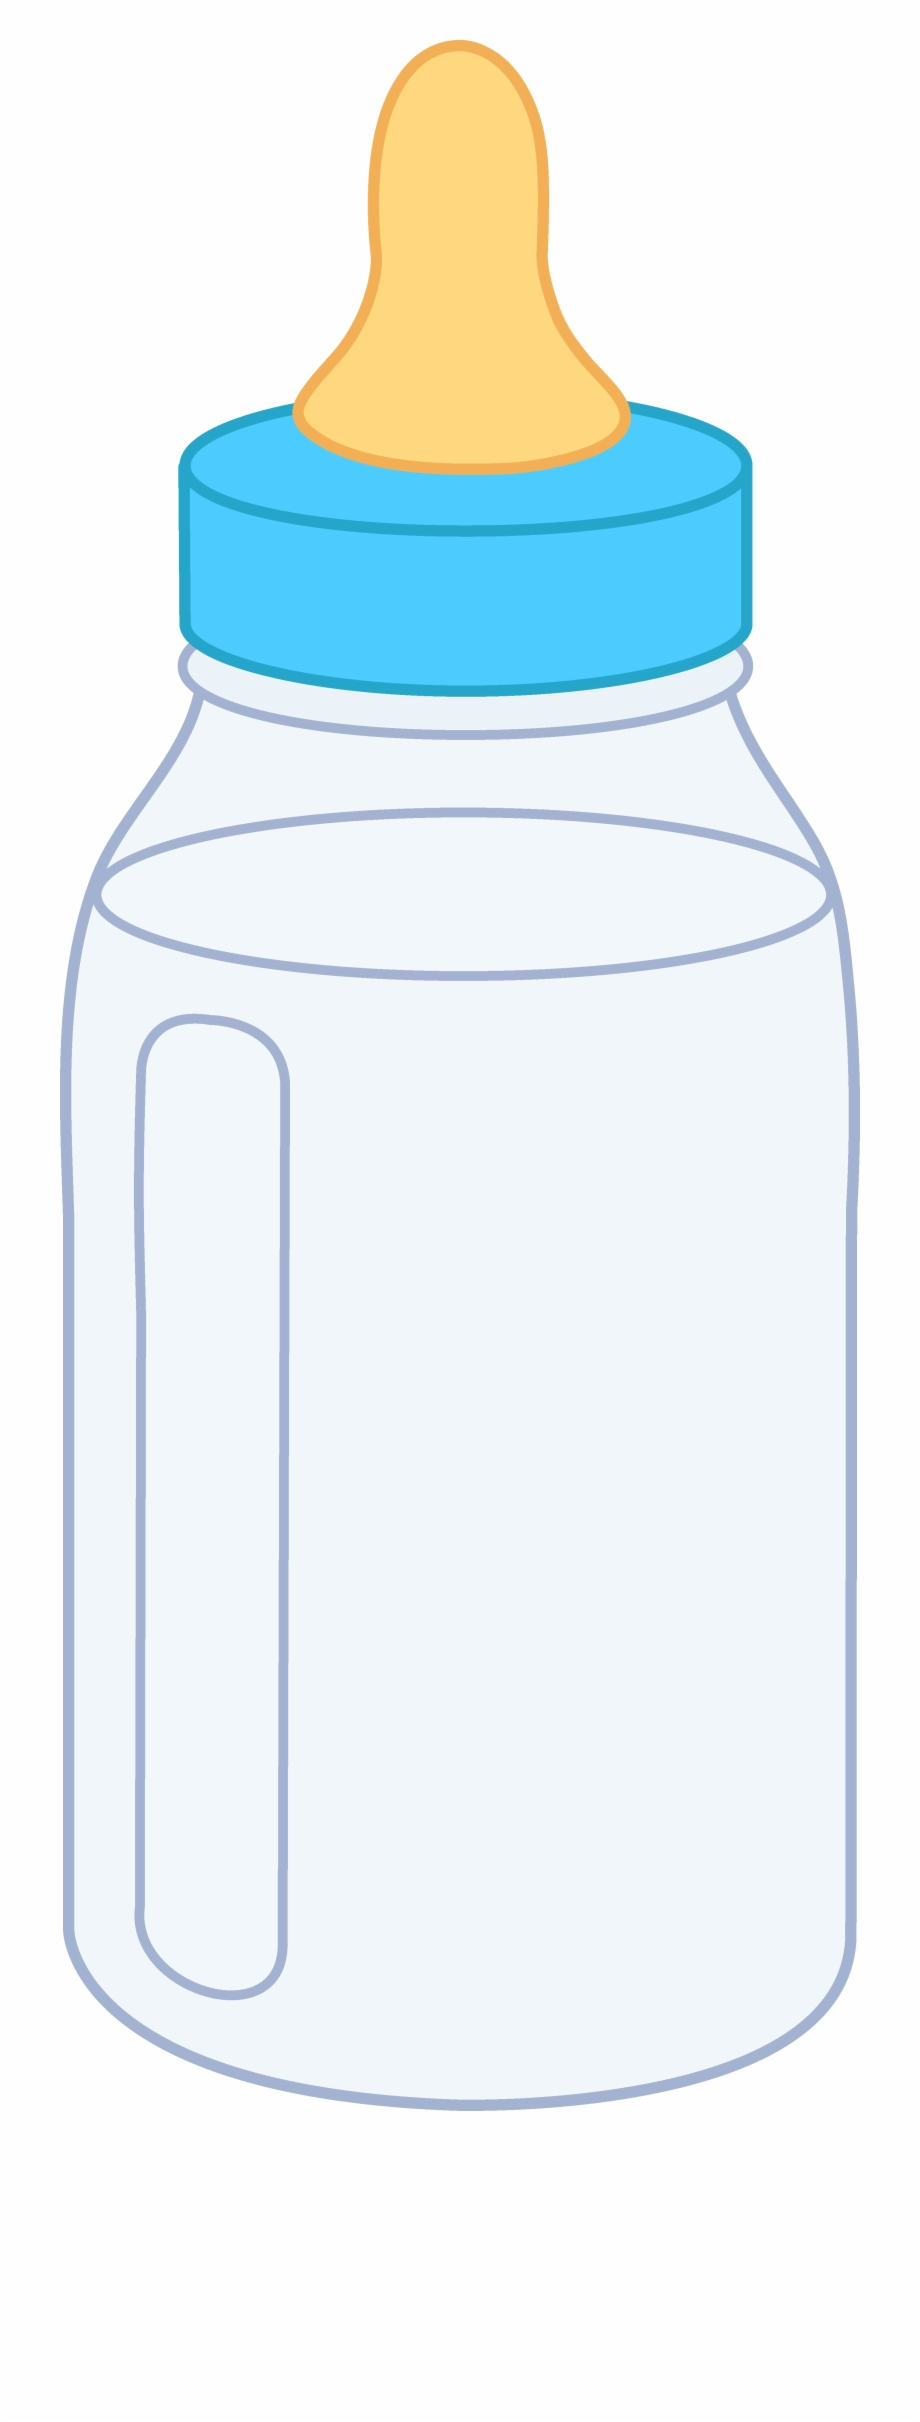 Free Baby Bottle Transparent, Download Free Clip Art, Free.